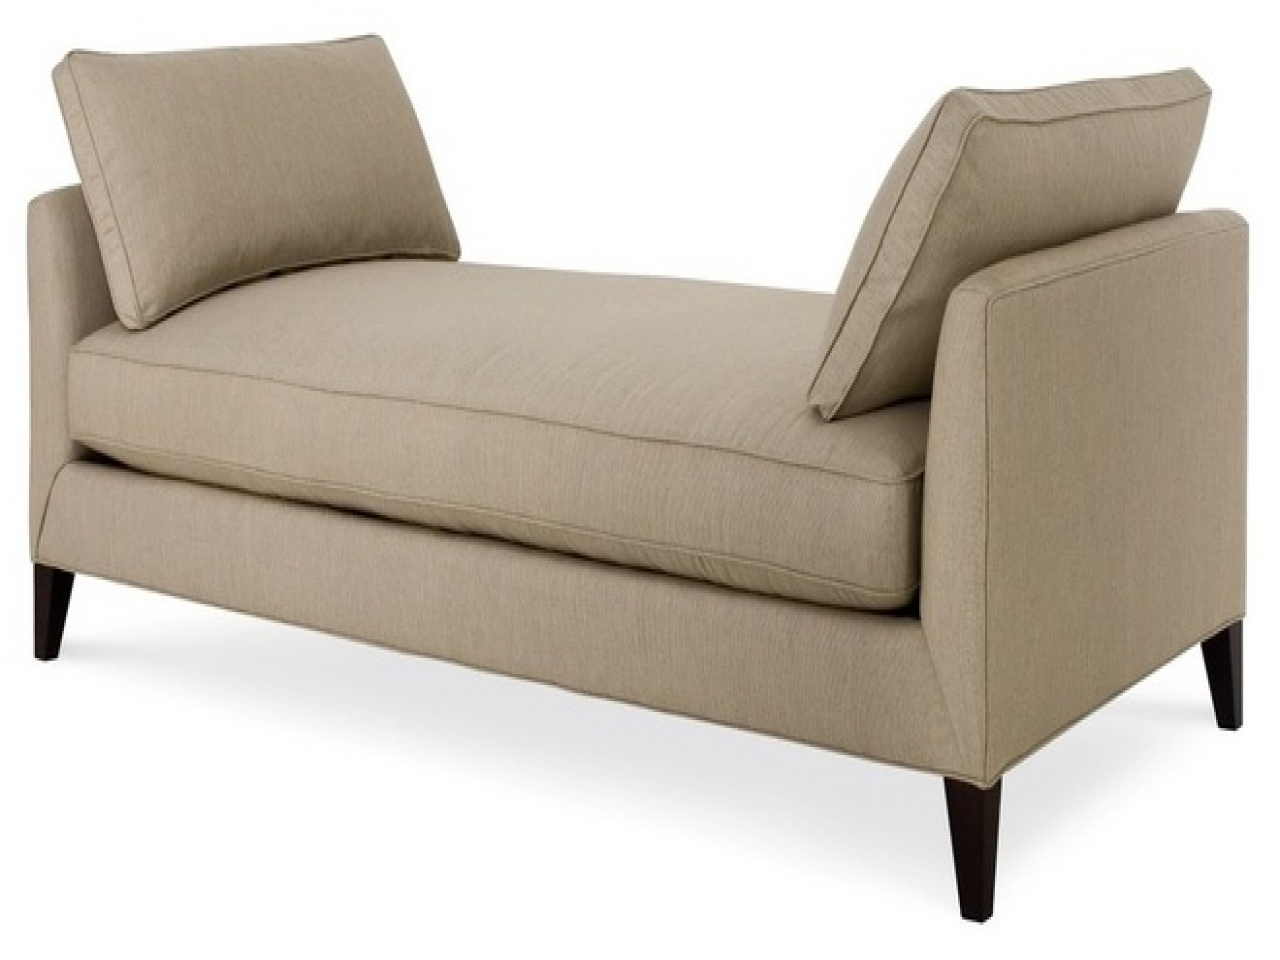 Daybed Chaise Lounge Sofa Upholstered Backless Efbdacef - Surripui pertaining to Well-known Upholstered Chaise Lounges